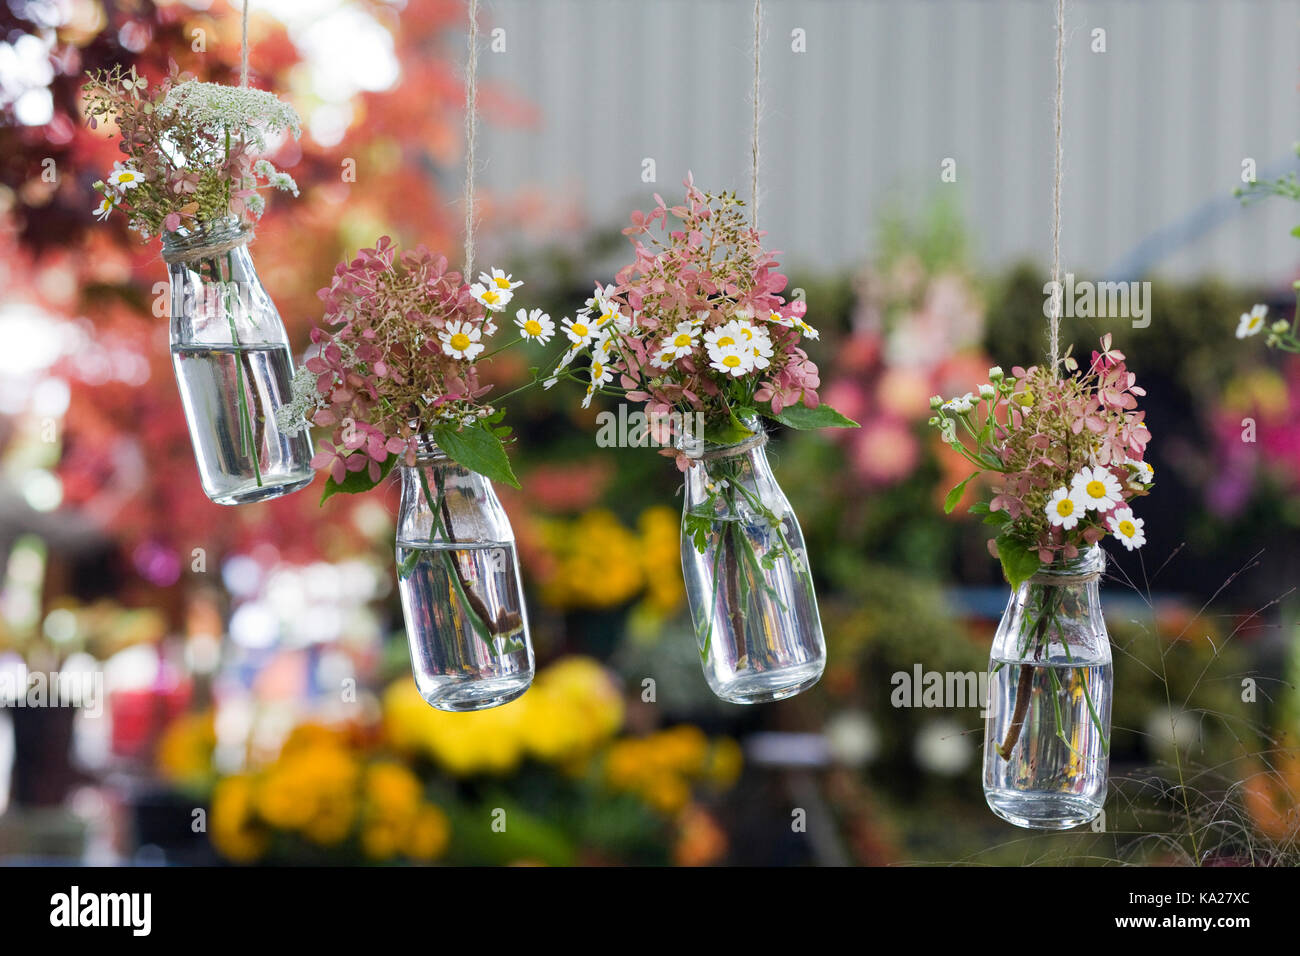 blumen in flaschen h ngende dekoration stockfoto bild 161090004 alamy. Black Bedroom Furniture Sets. Home Design Ideas